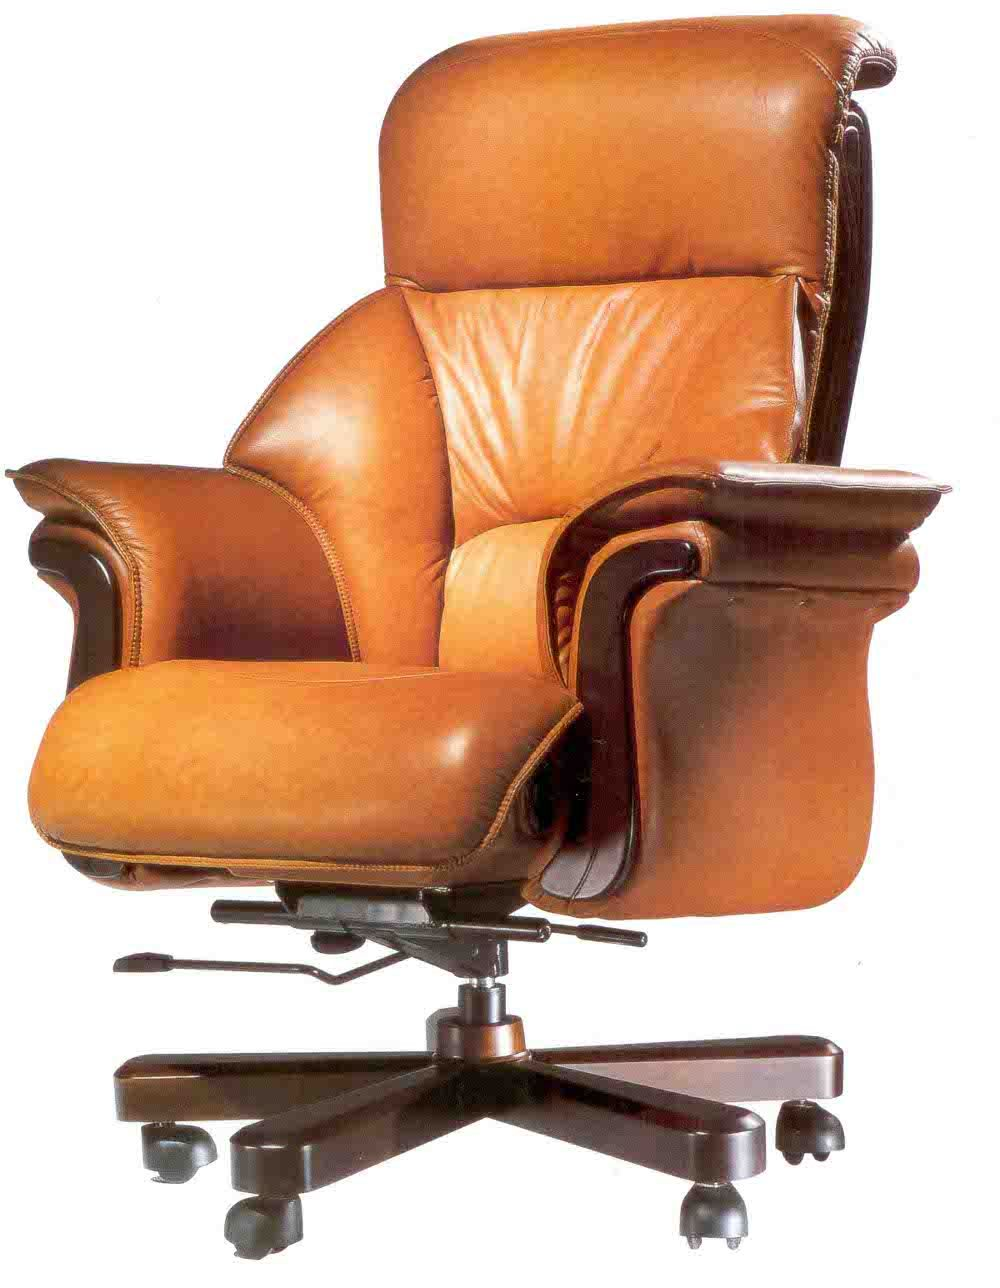 Luxury brown leather office chair